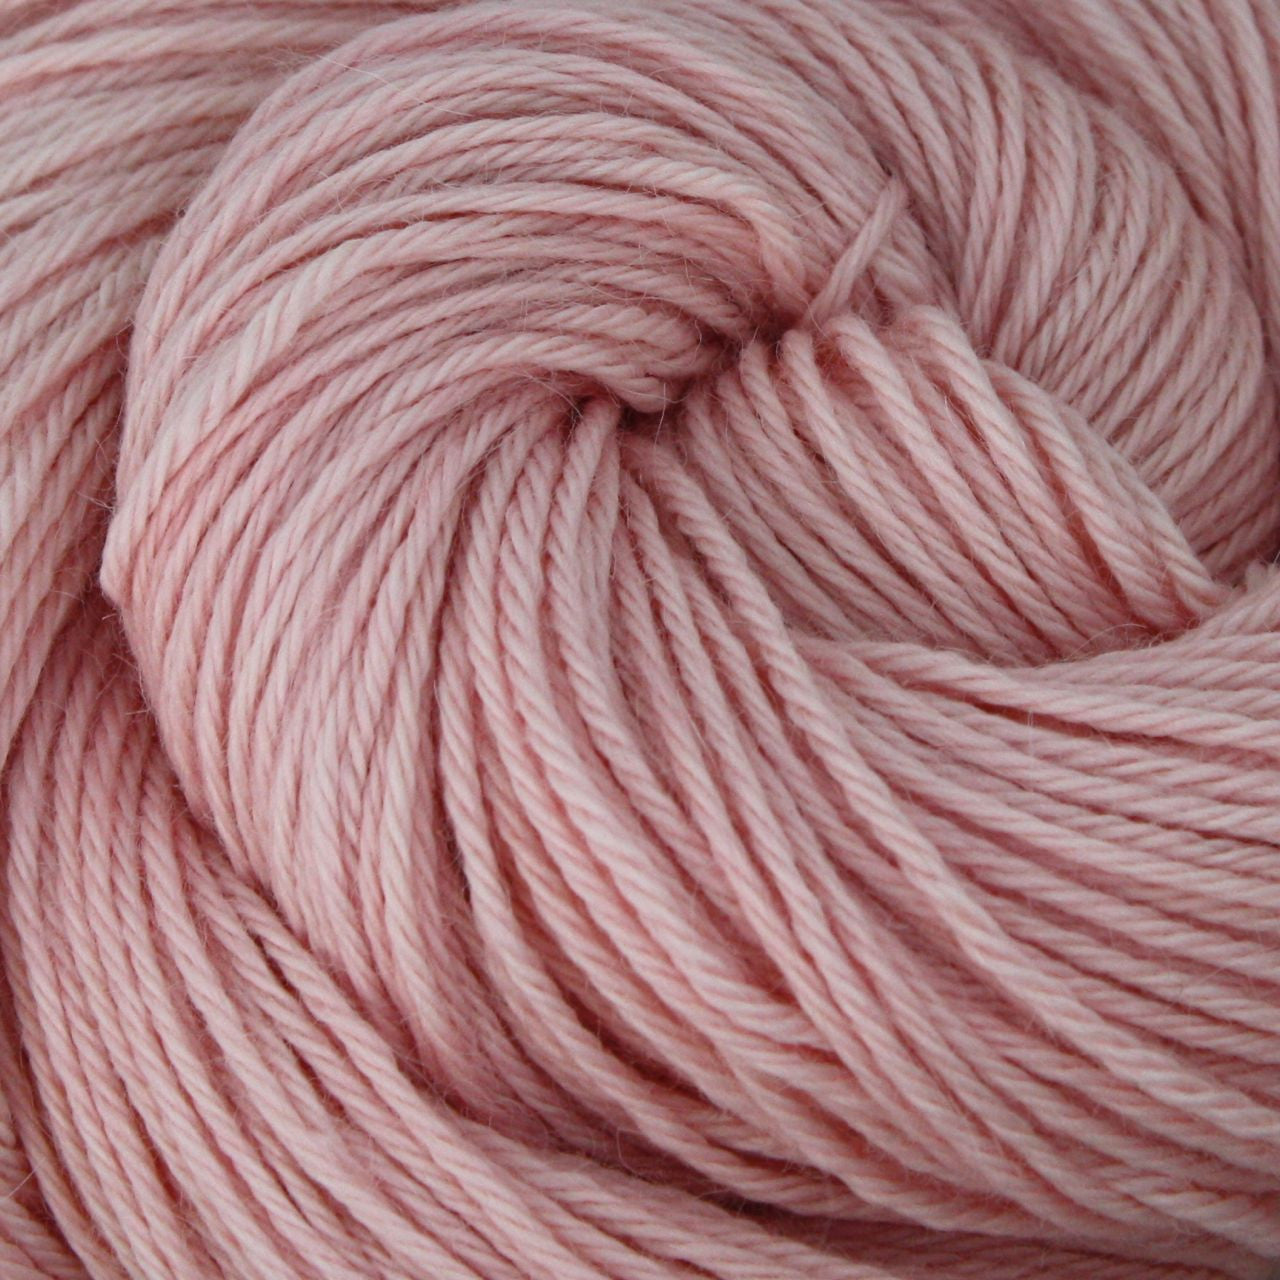 Vega Yarn | Colorway: Ballet Slipper